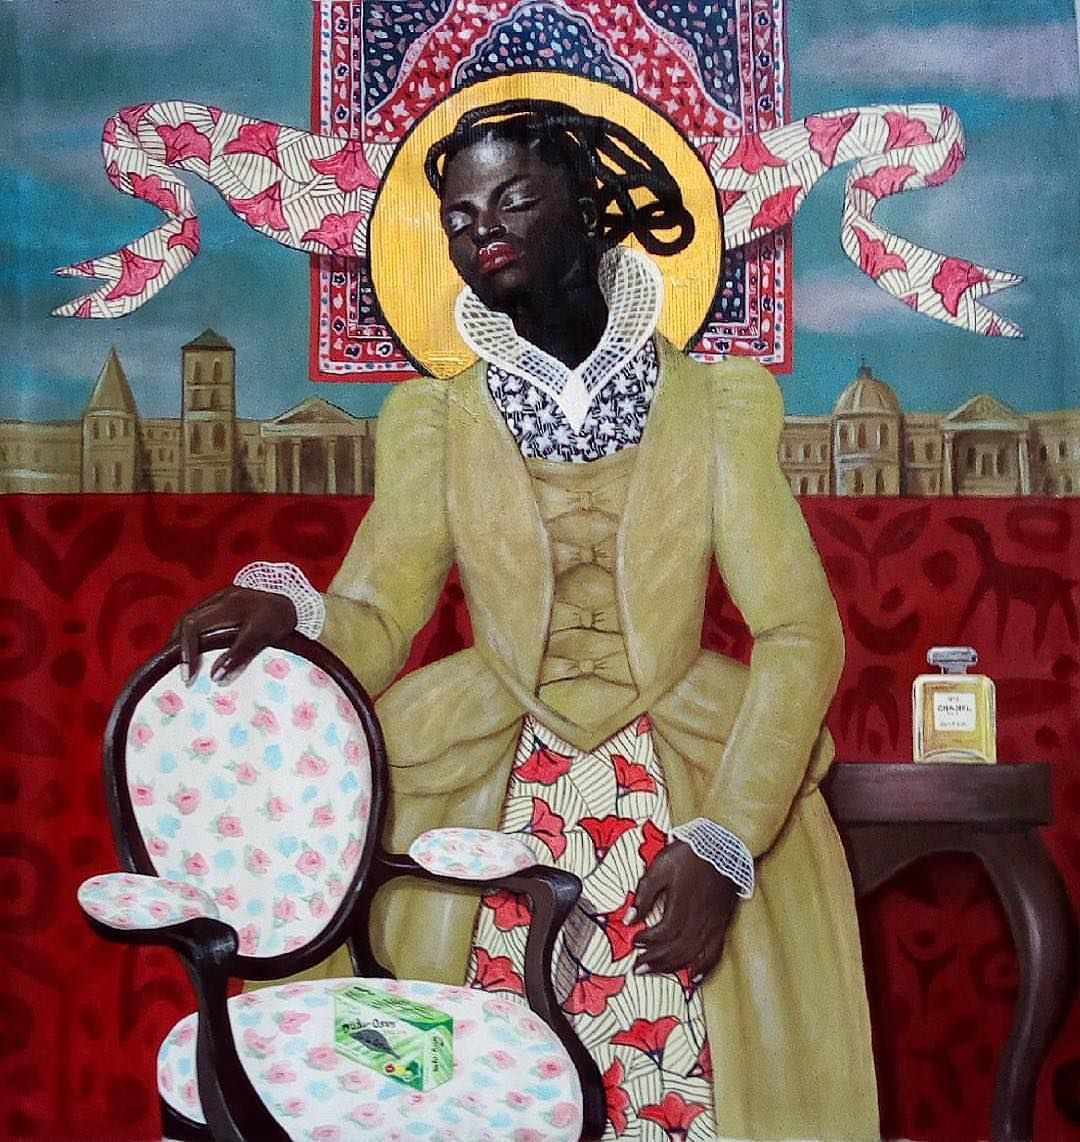 Joseph Eze's Portraitures Celebrate African Women